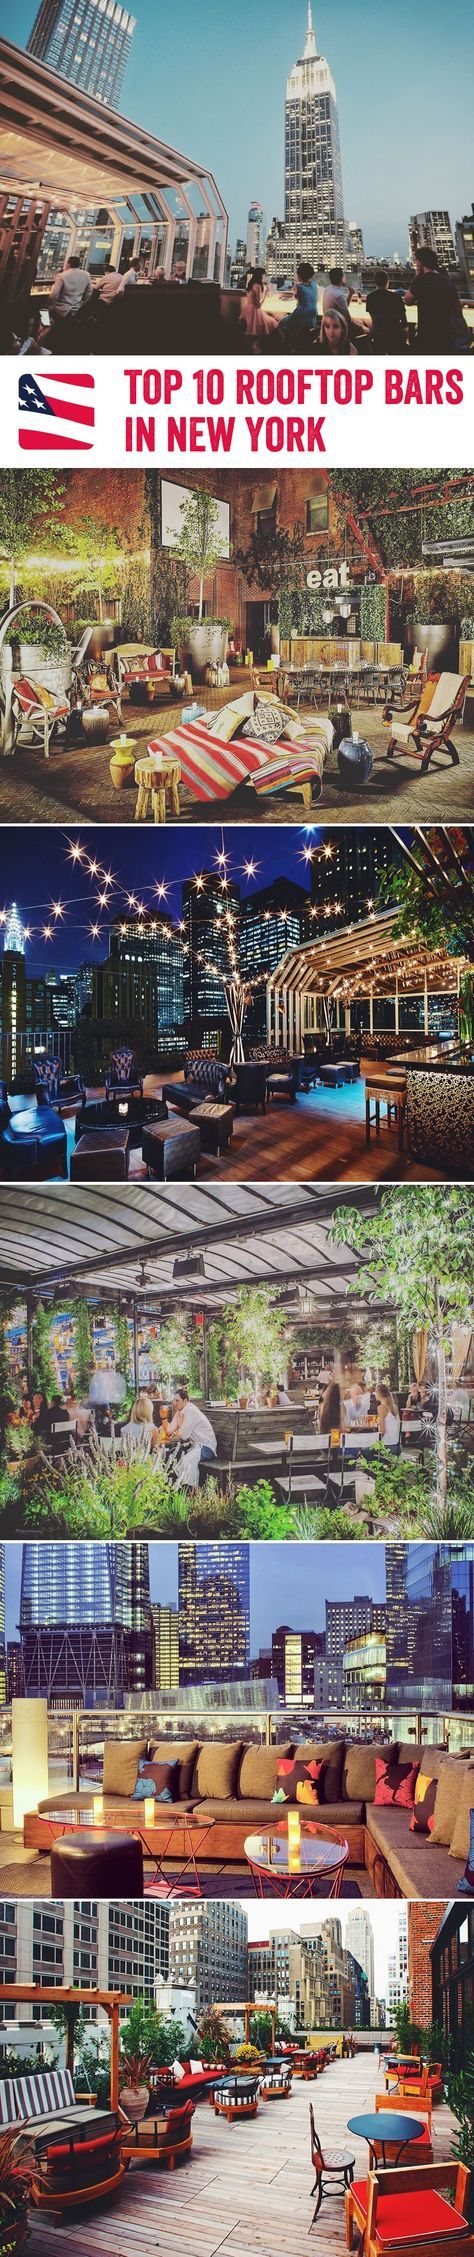 We've collated our favourite open-air bars in New York City, from the unique, to the classy